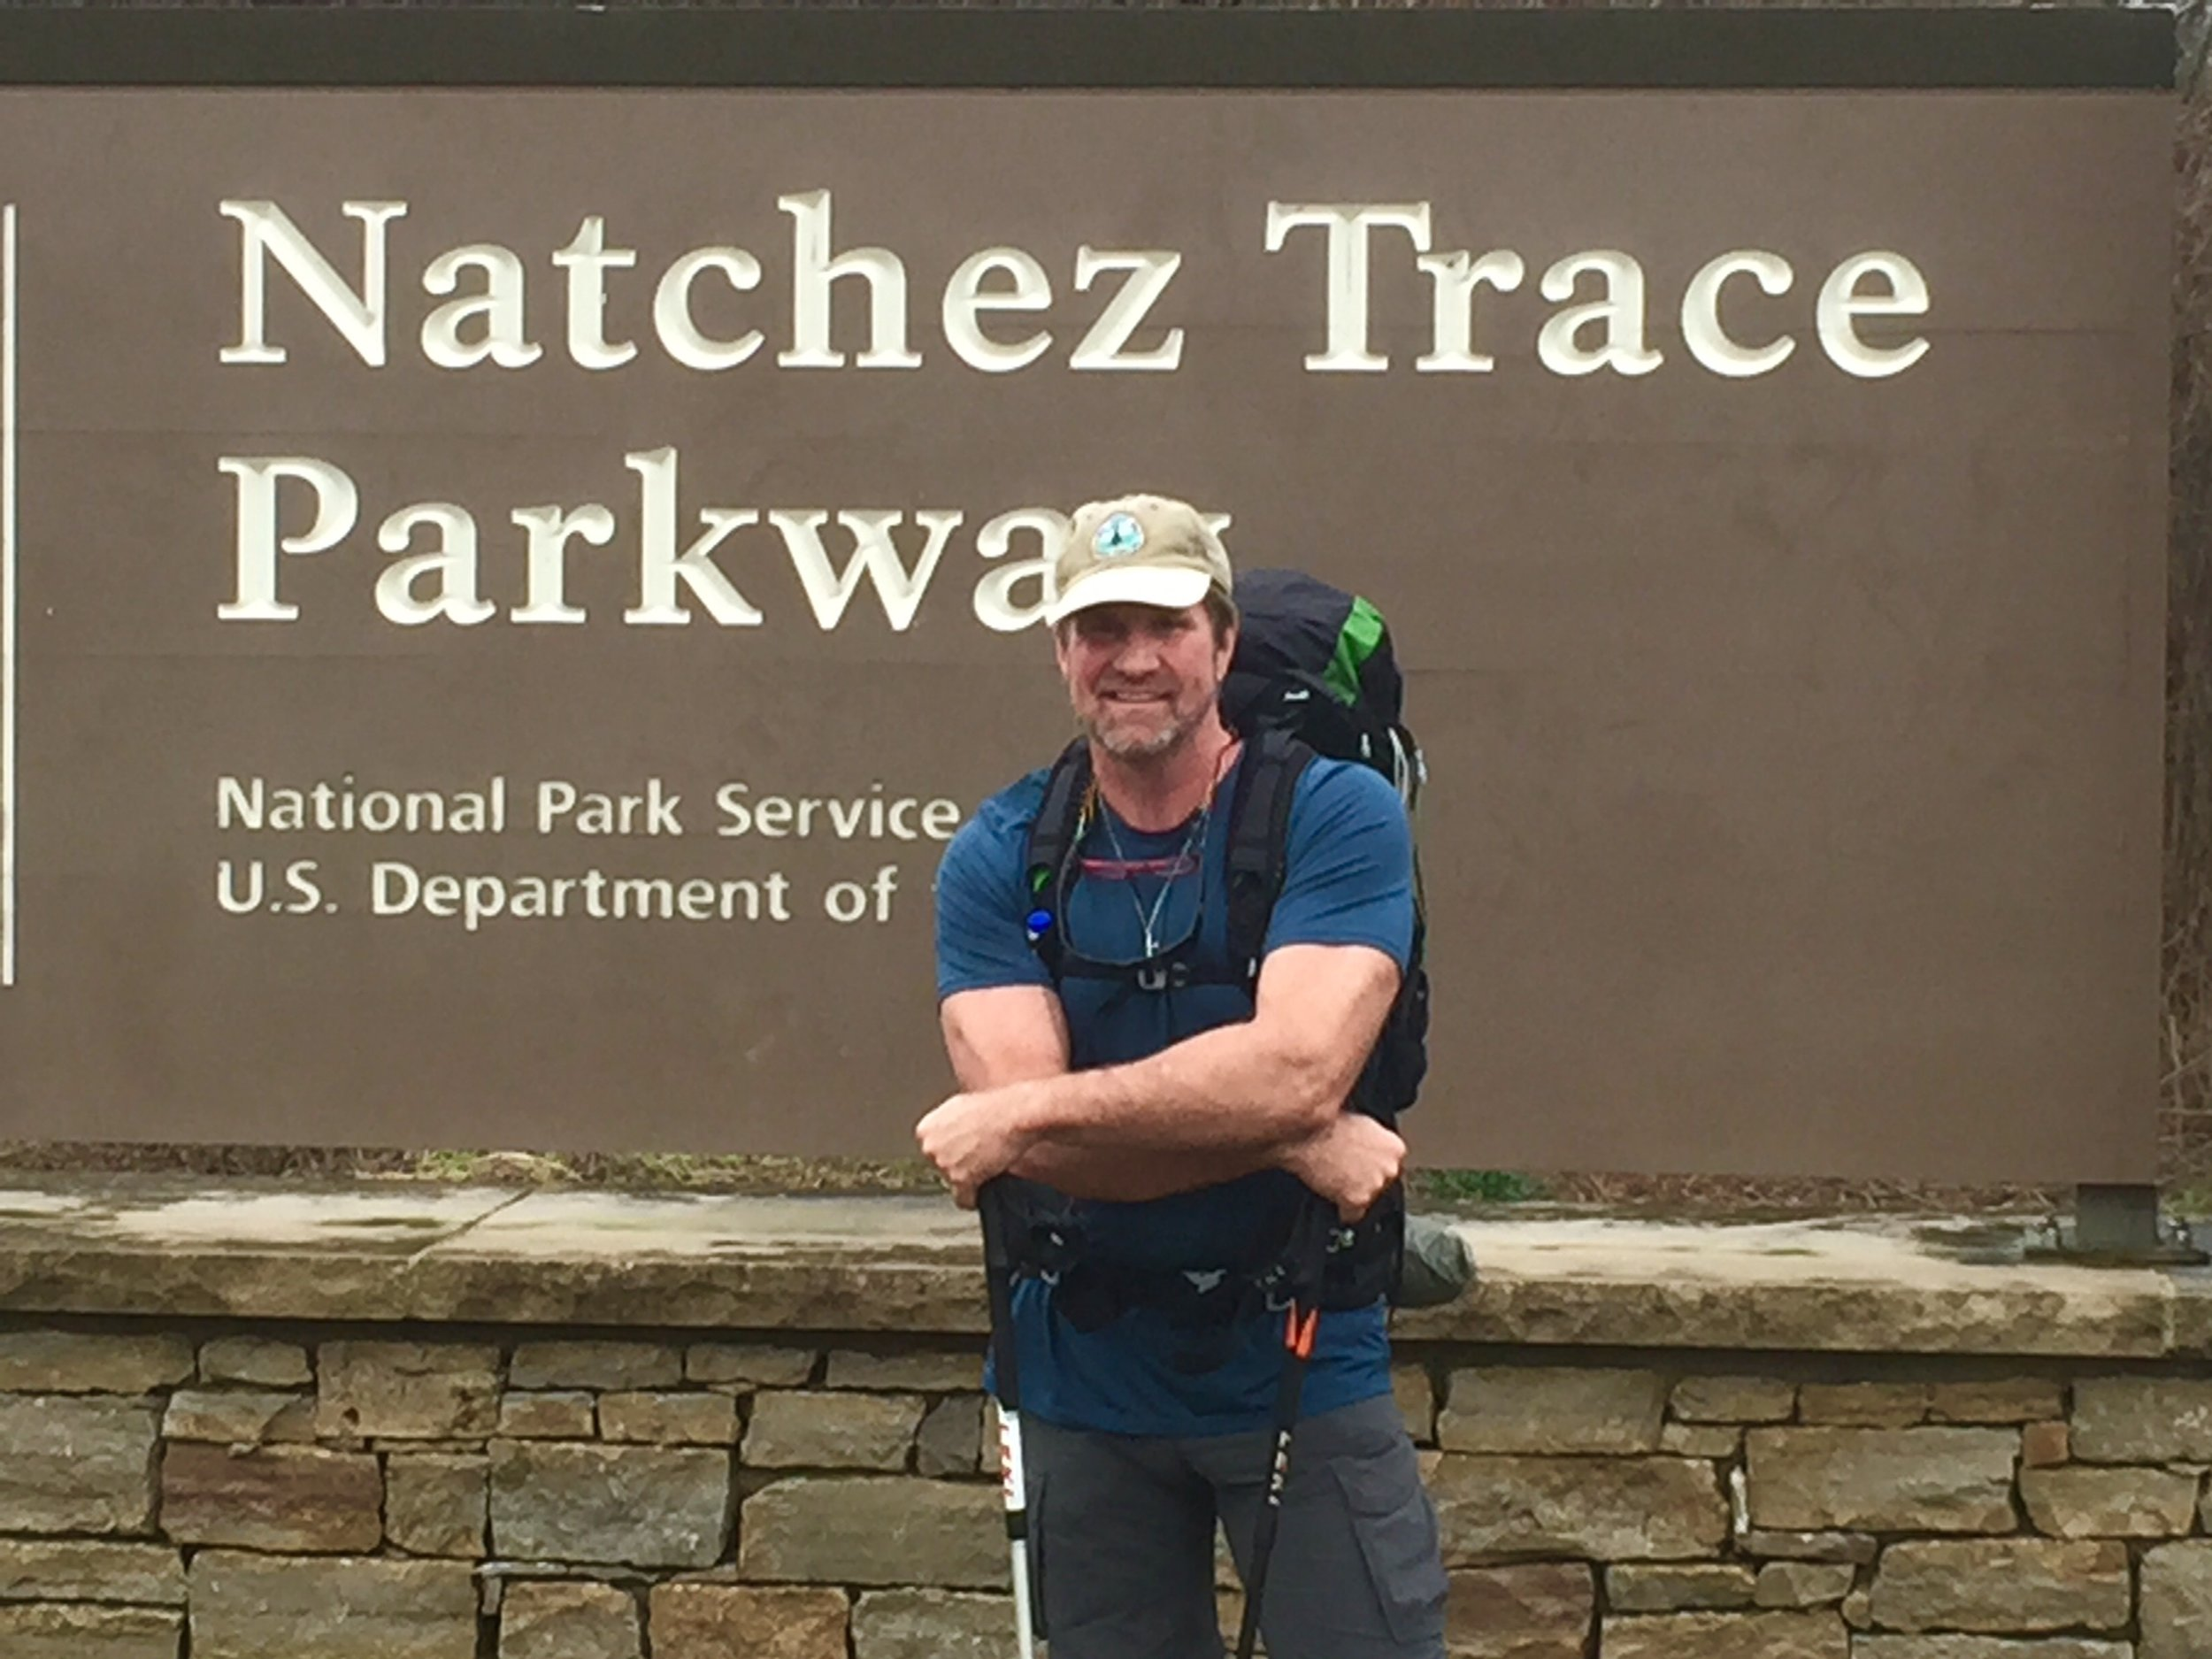 Bill Wasser at the Southern Terminus of Natchez Trace Parkway